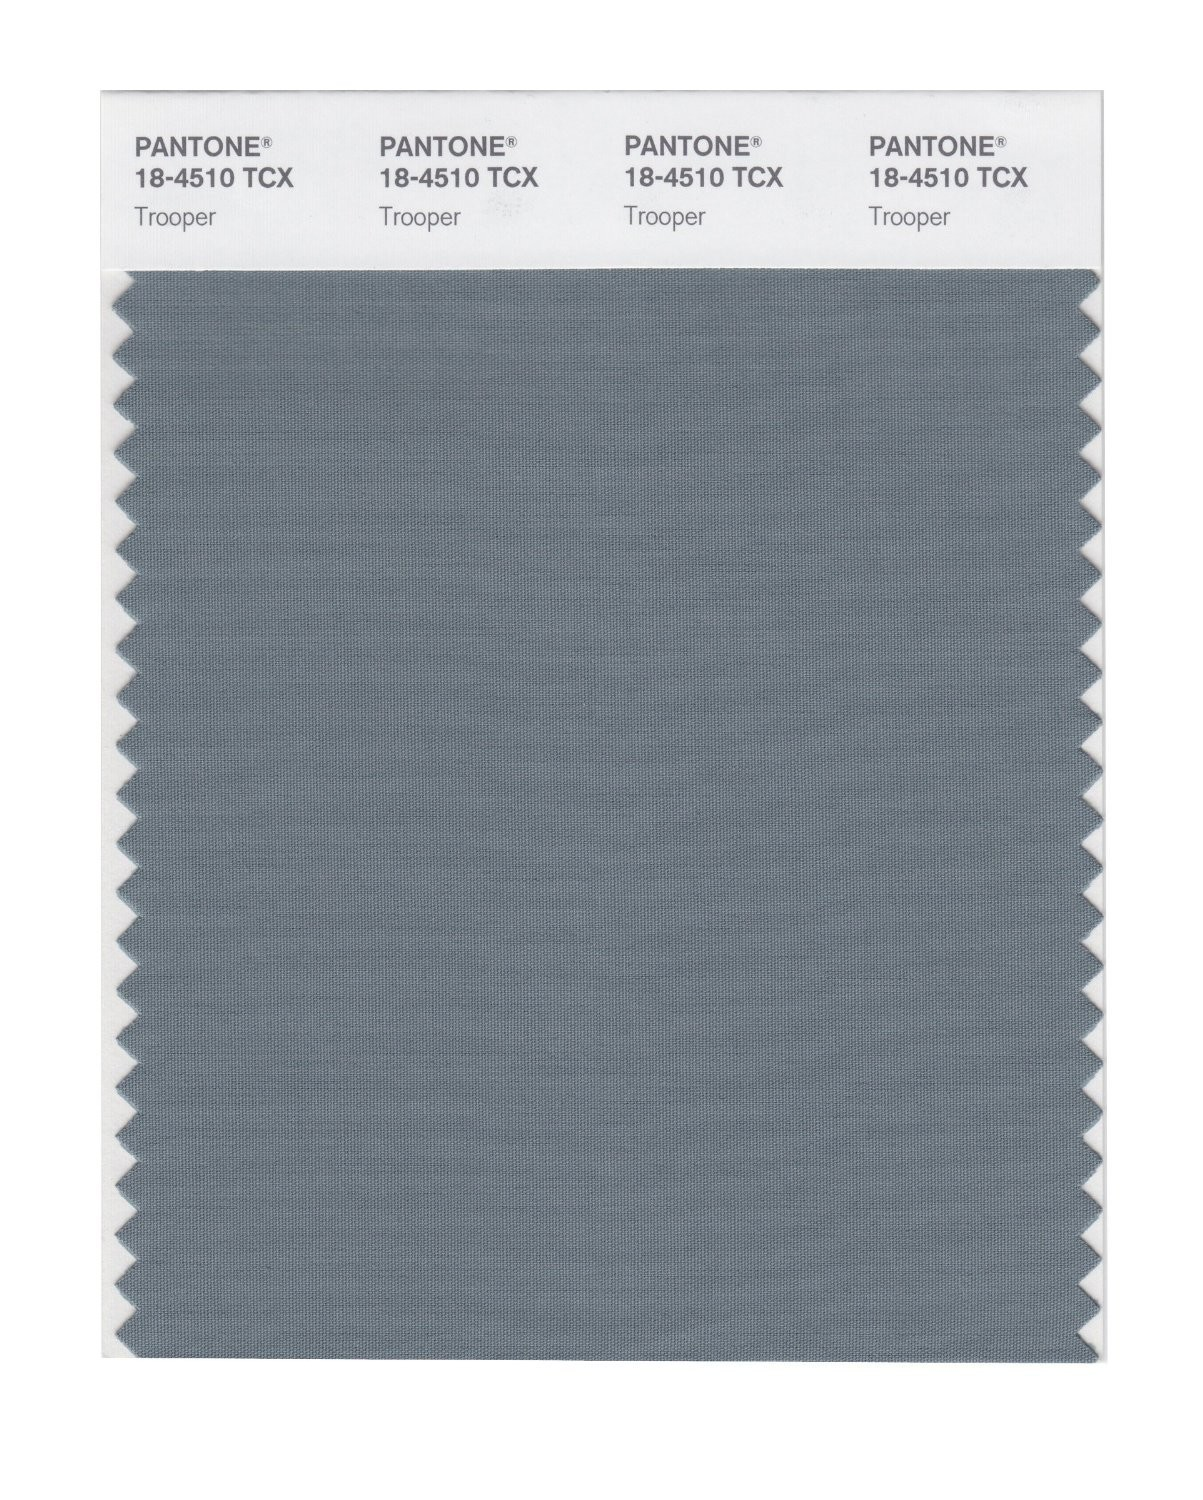 Pantone 18-4510 TCX Swatch Card Trooper